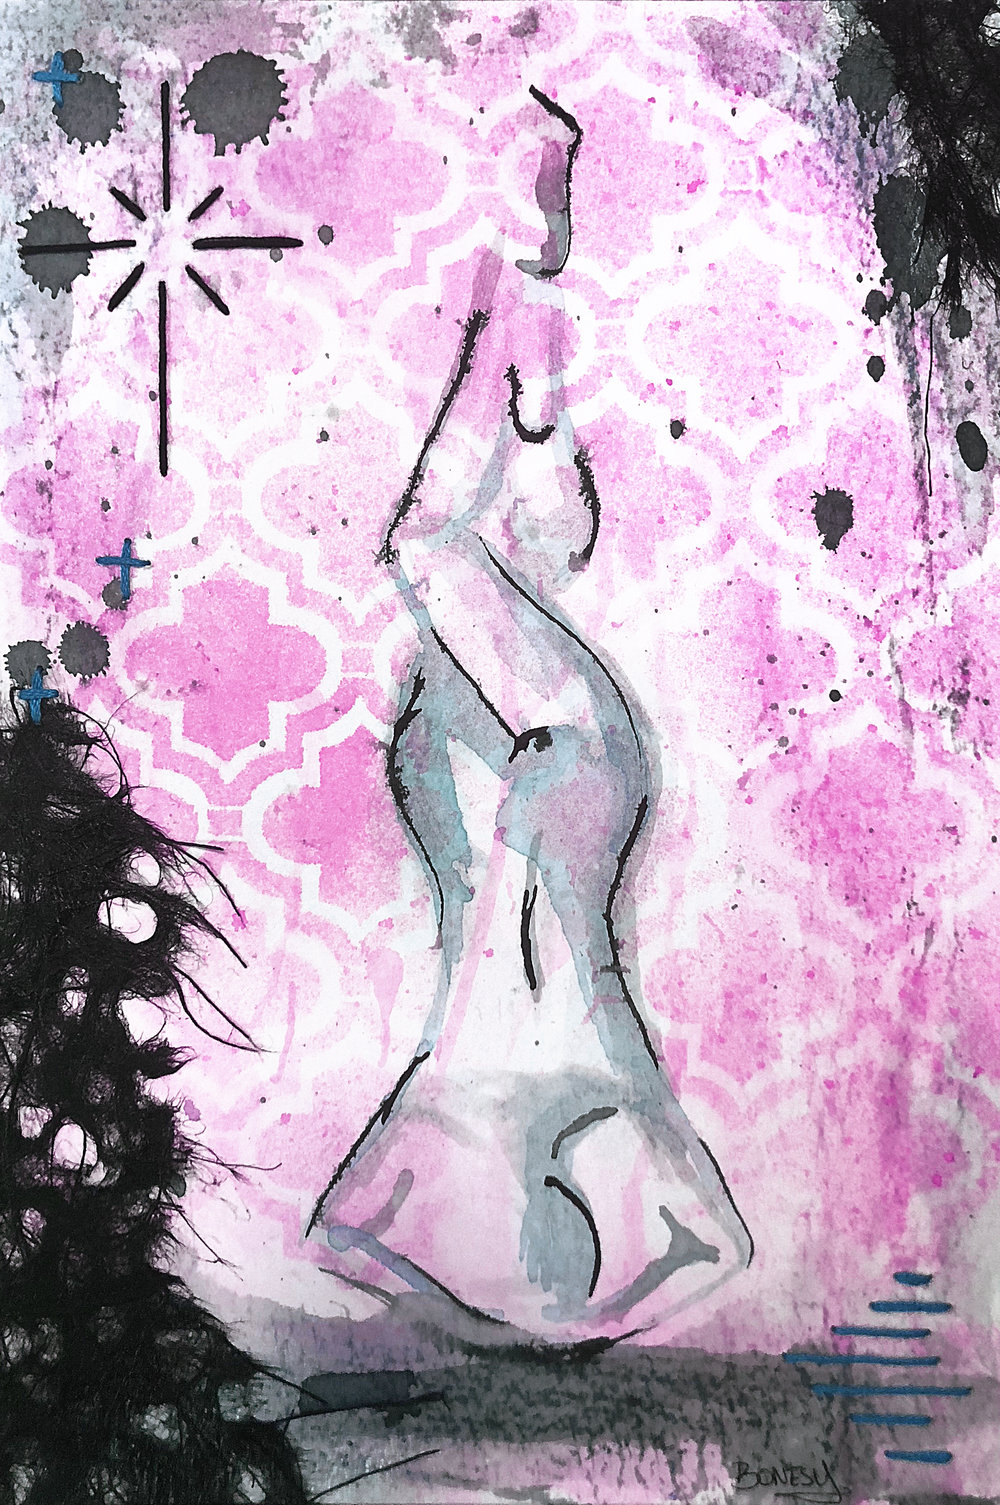 Watercolor on paper, painted with palette knives, yoga pose pincha mayurasana, or forearm stand.